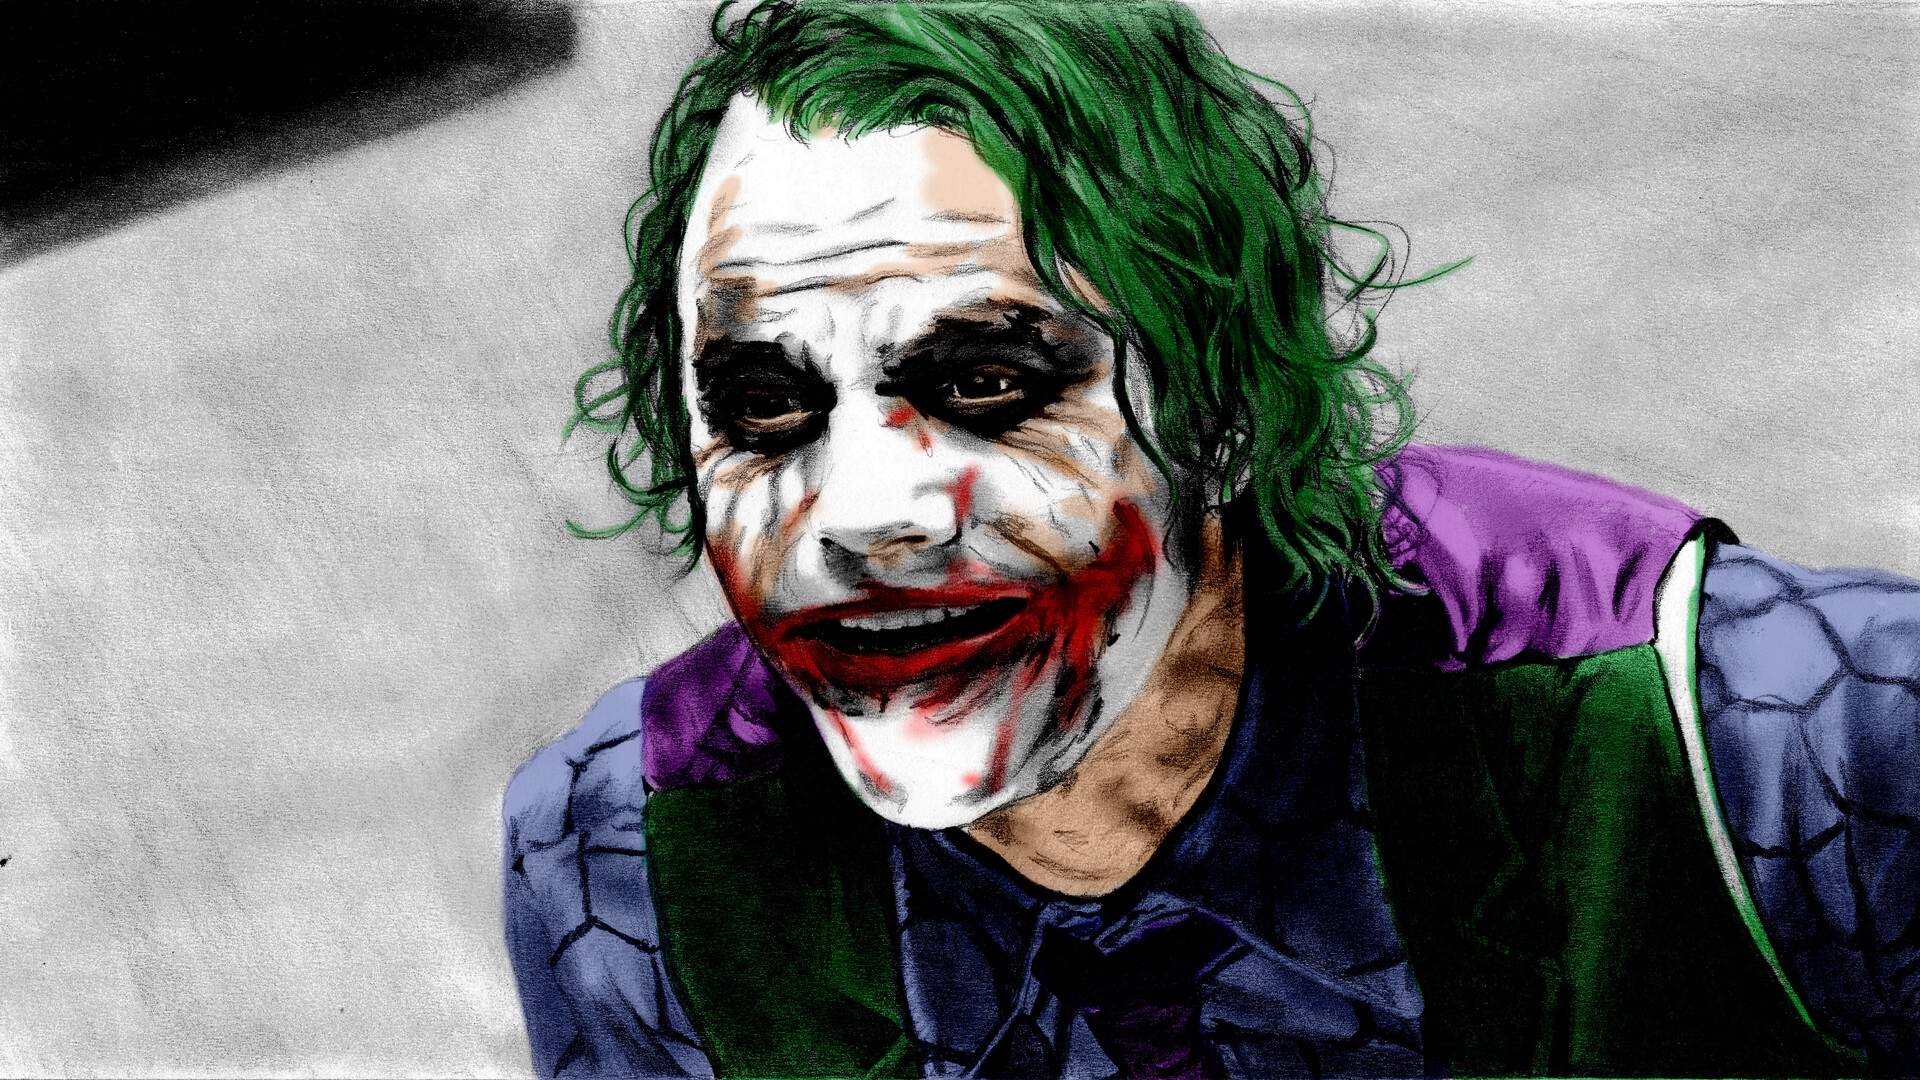 1920x1080 Joker The Dark Knight Laptop Full Hd 1080p Hd 4k